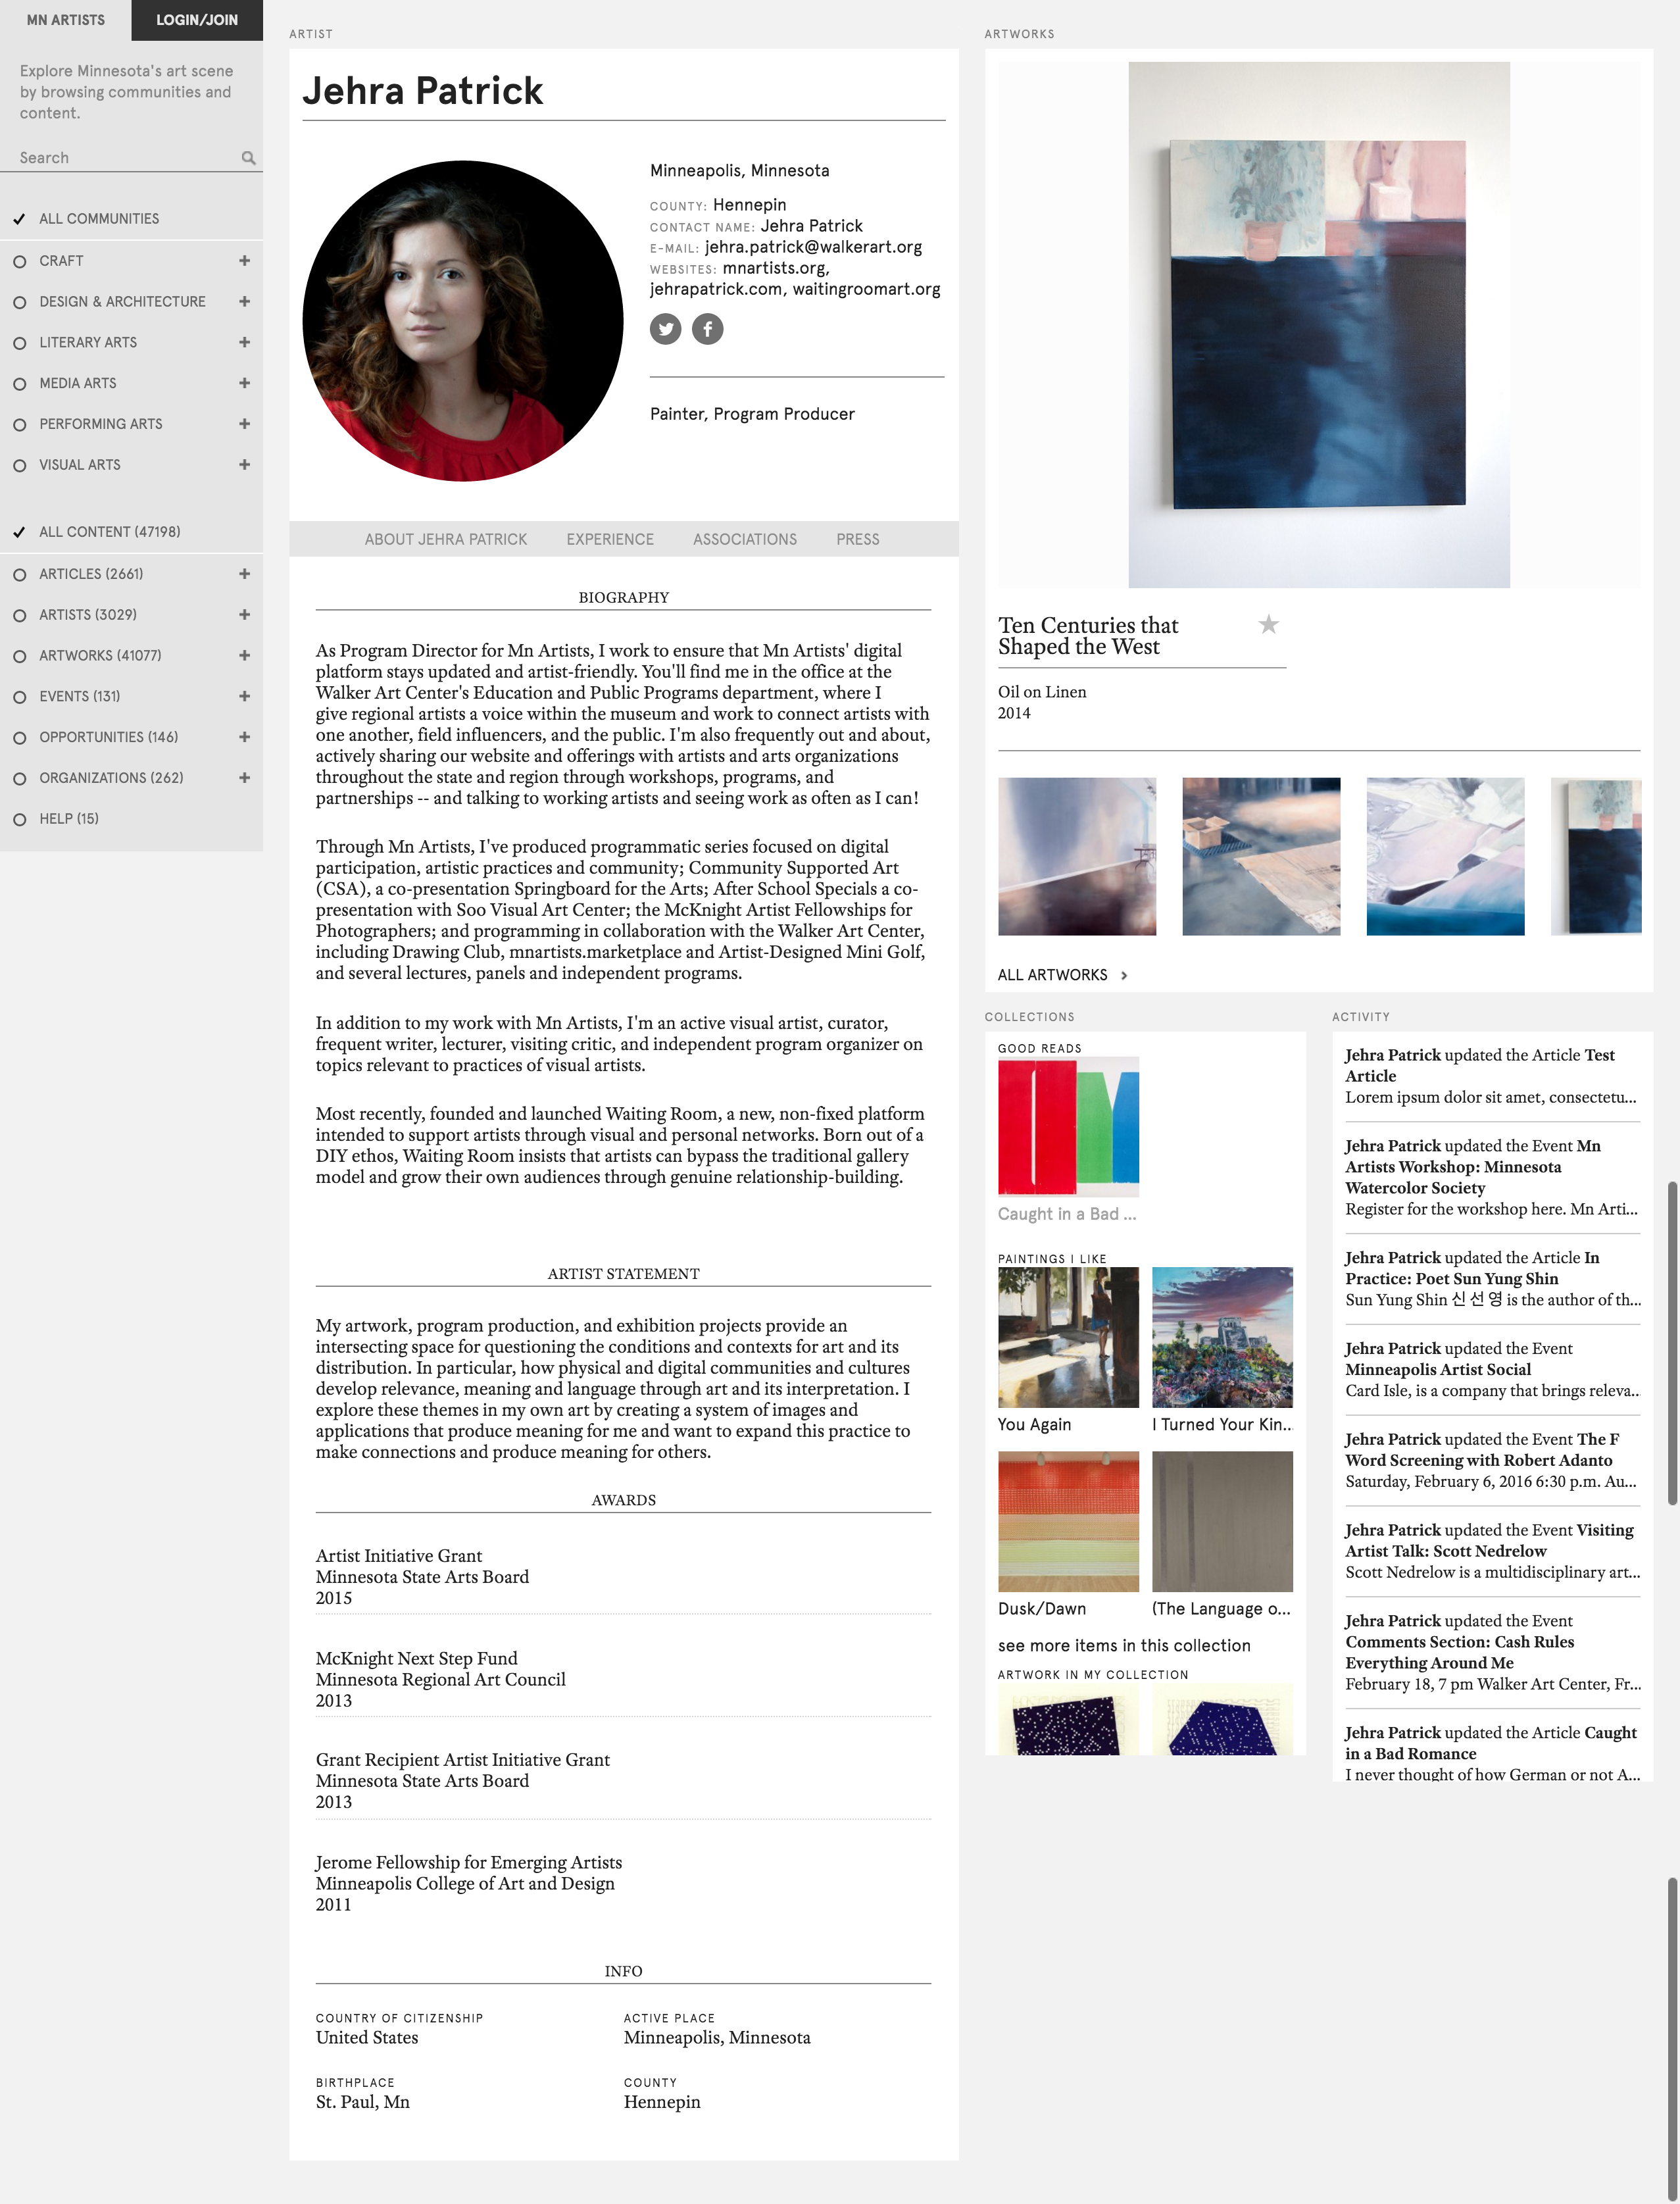 Figure 5: Mn Artists artist profile, featuring artwork, personal information, connectivity with social media profiles, personal collections, and dynamic activity feed